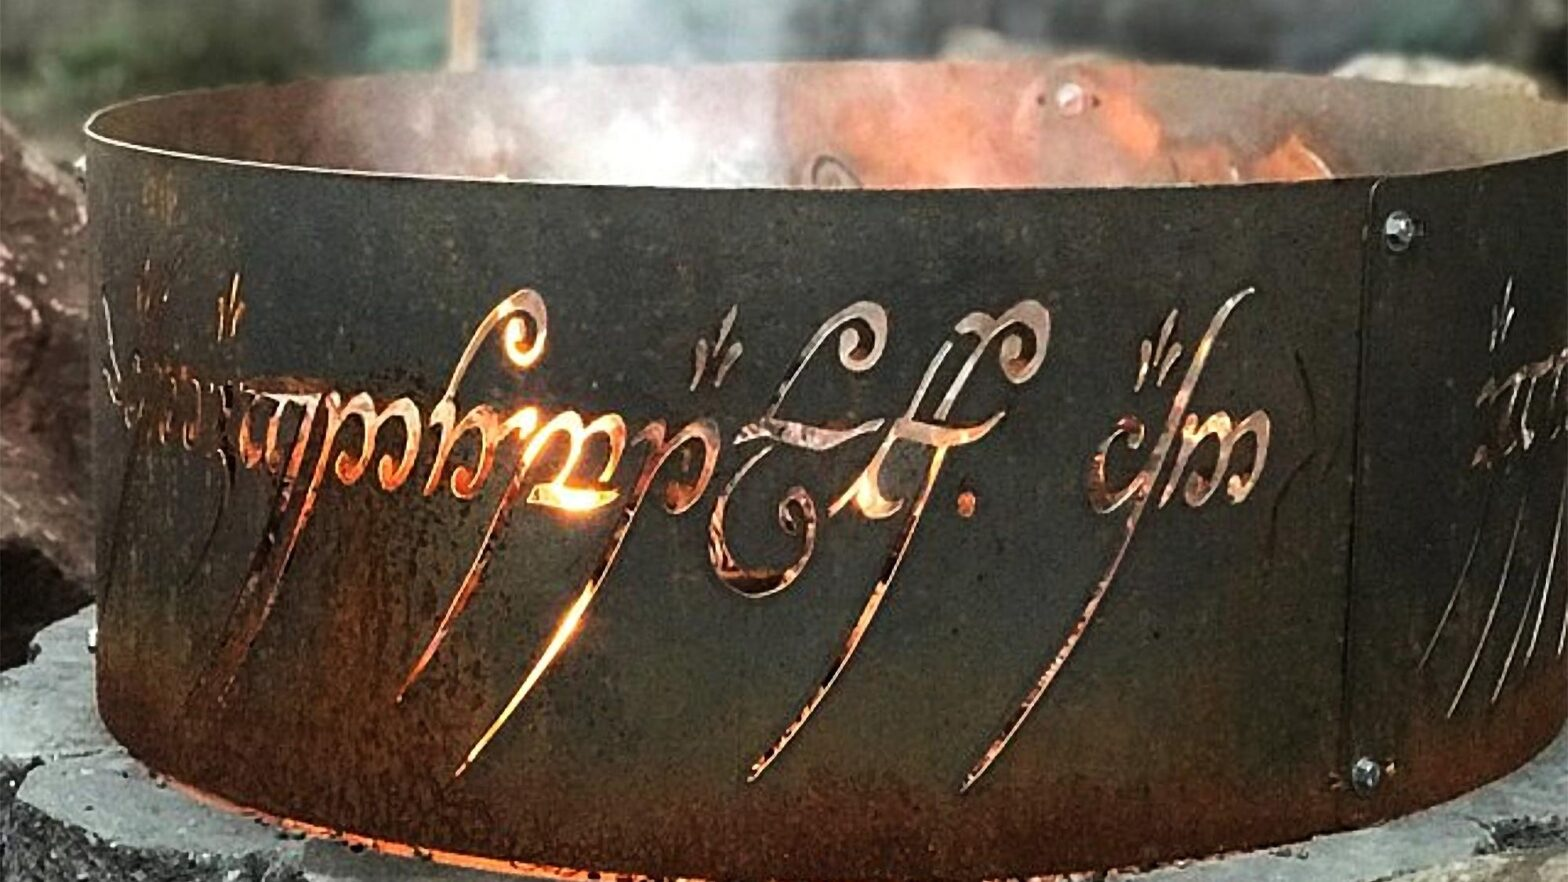 Lord of the Ring Fire Pit by Cutting Edge Steelwork